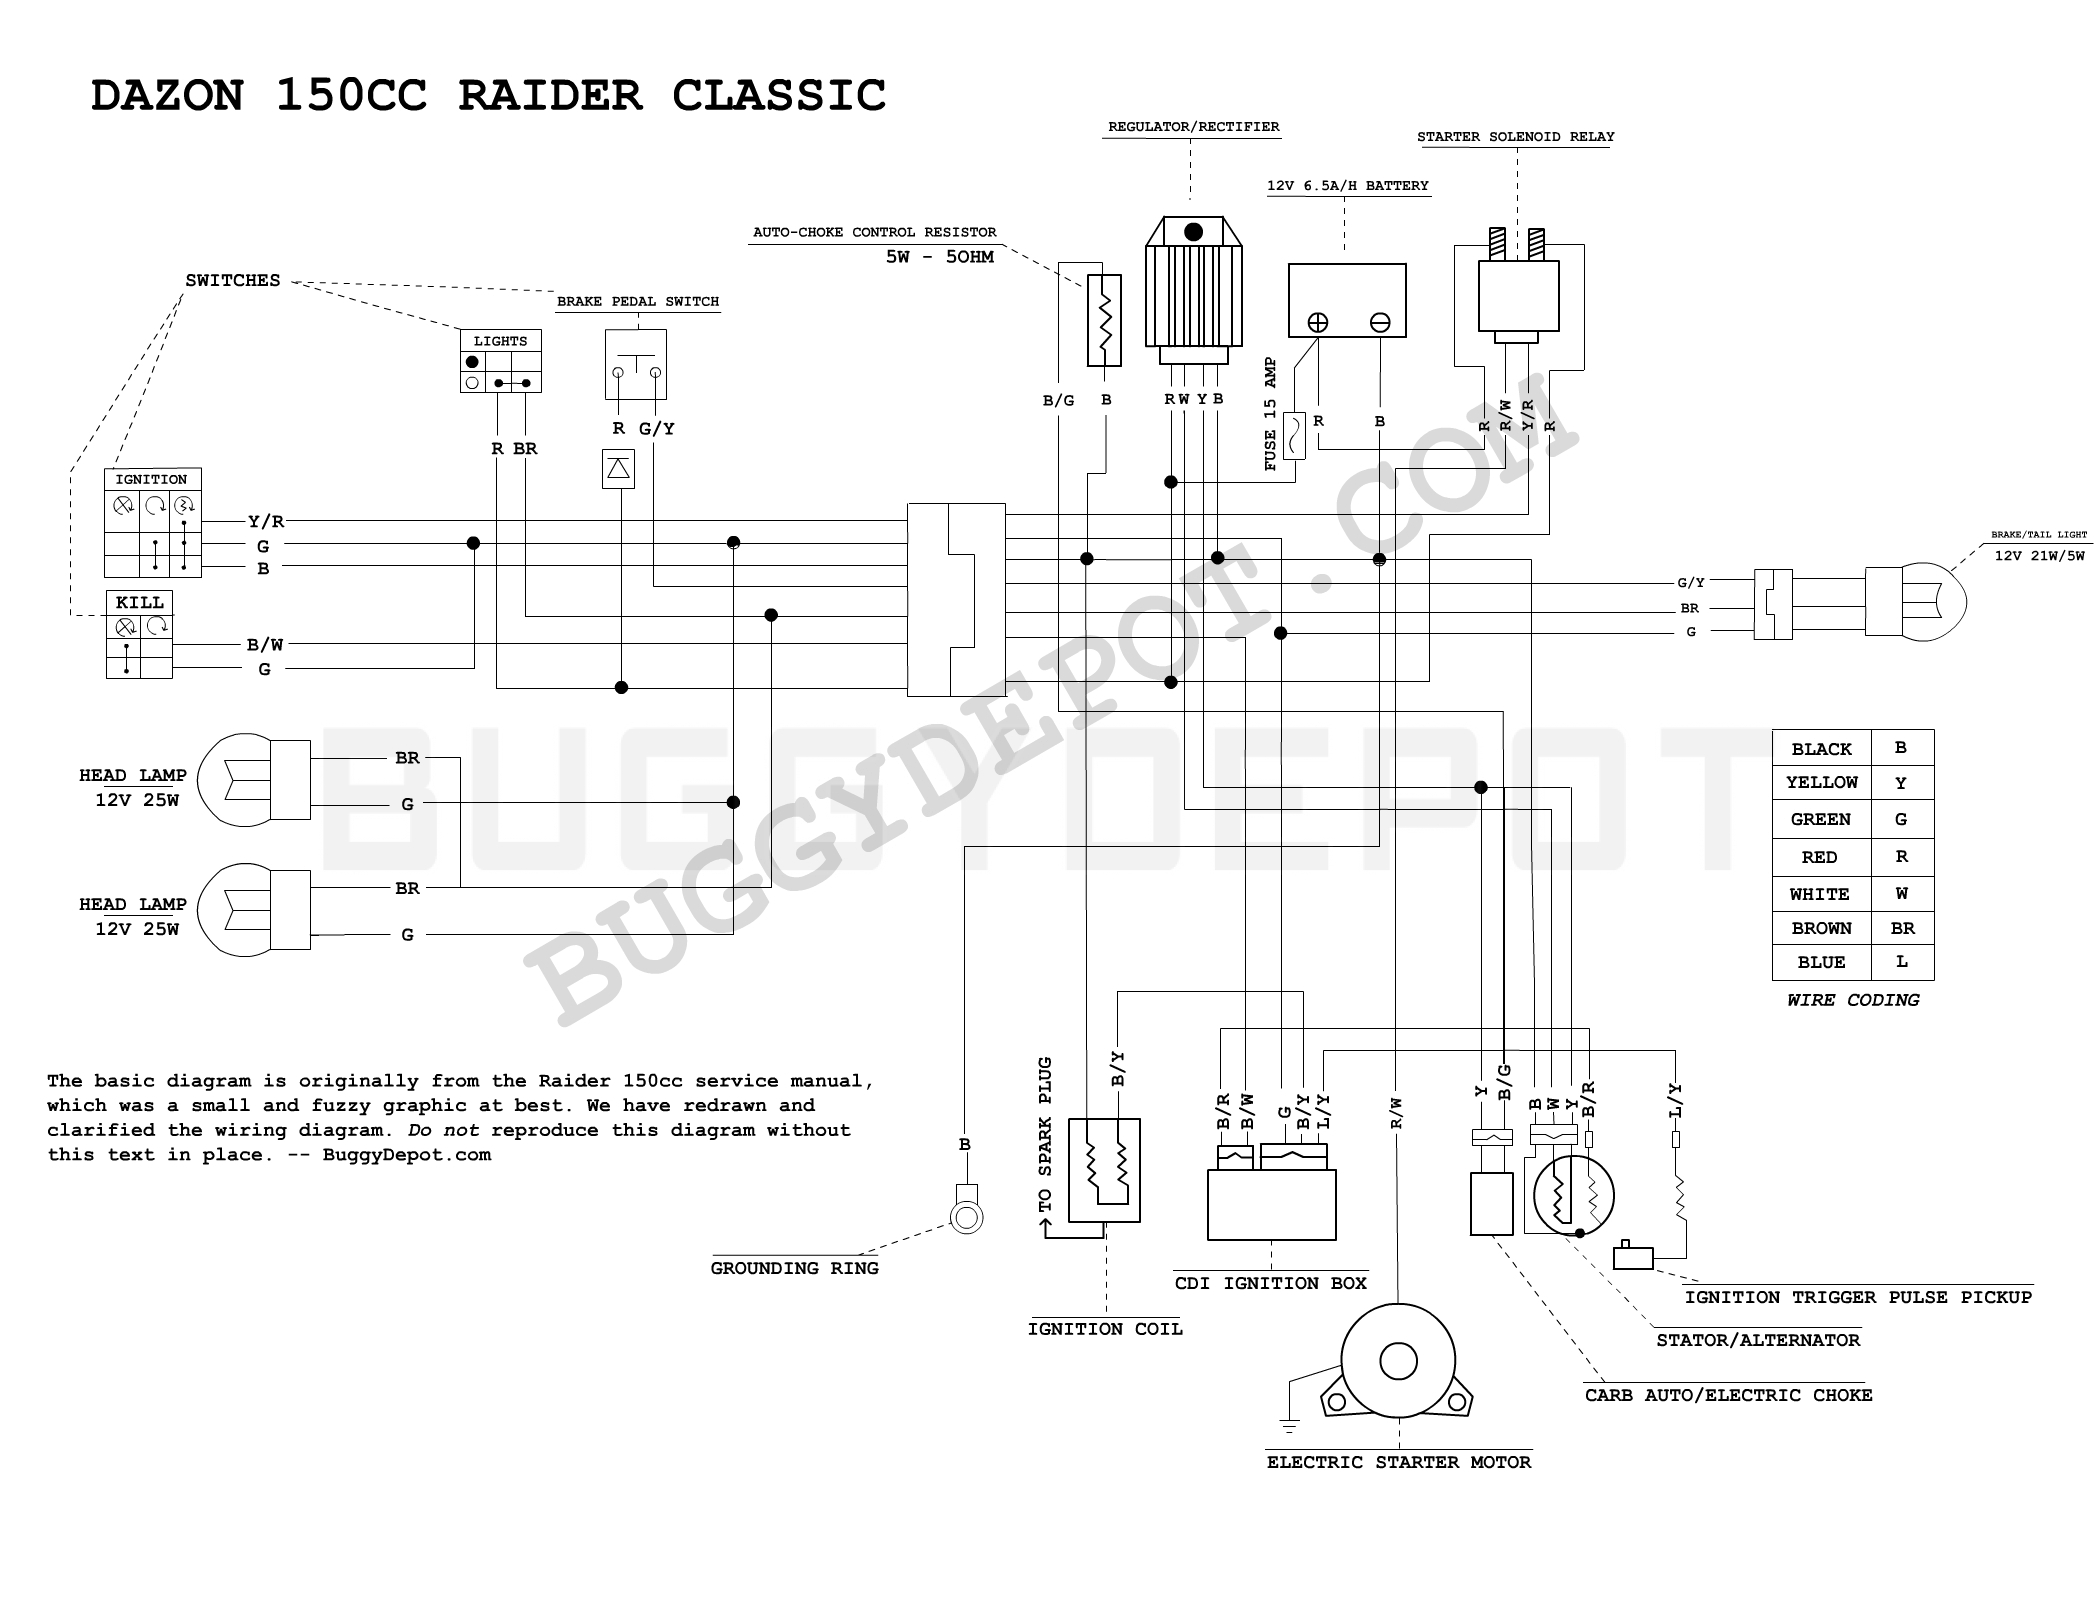 dazon raider classic wiring diagram buggy depot technical center article 33 1278205207